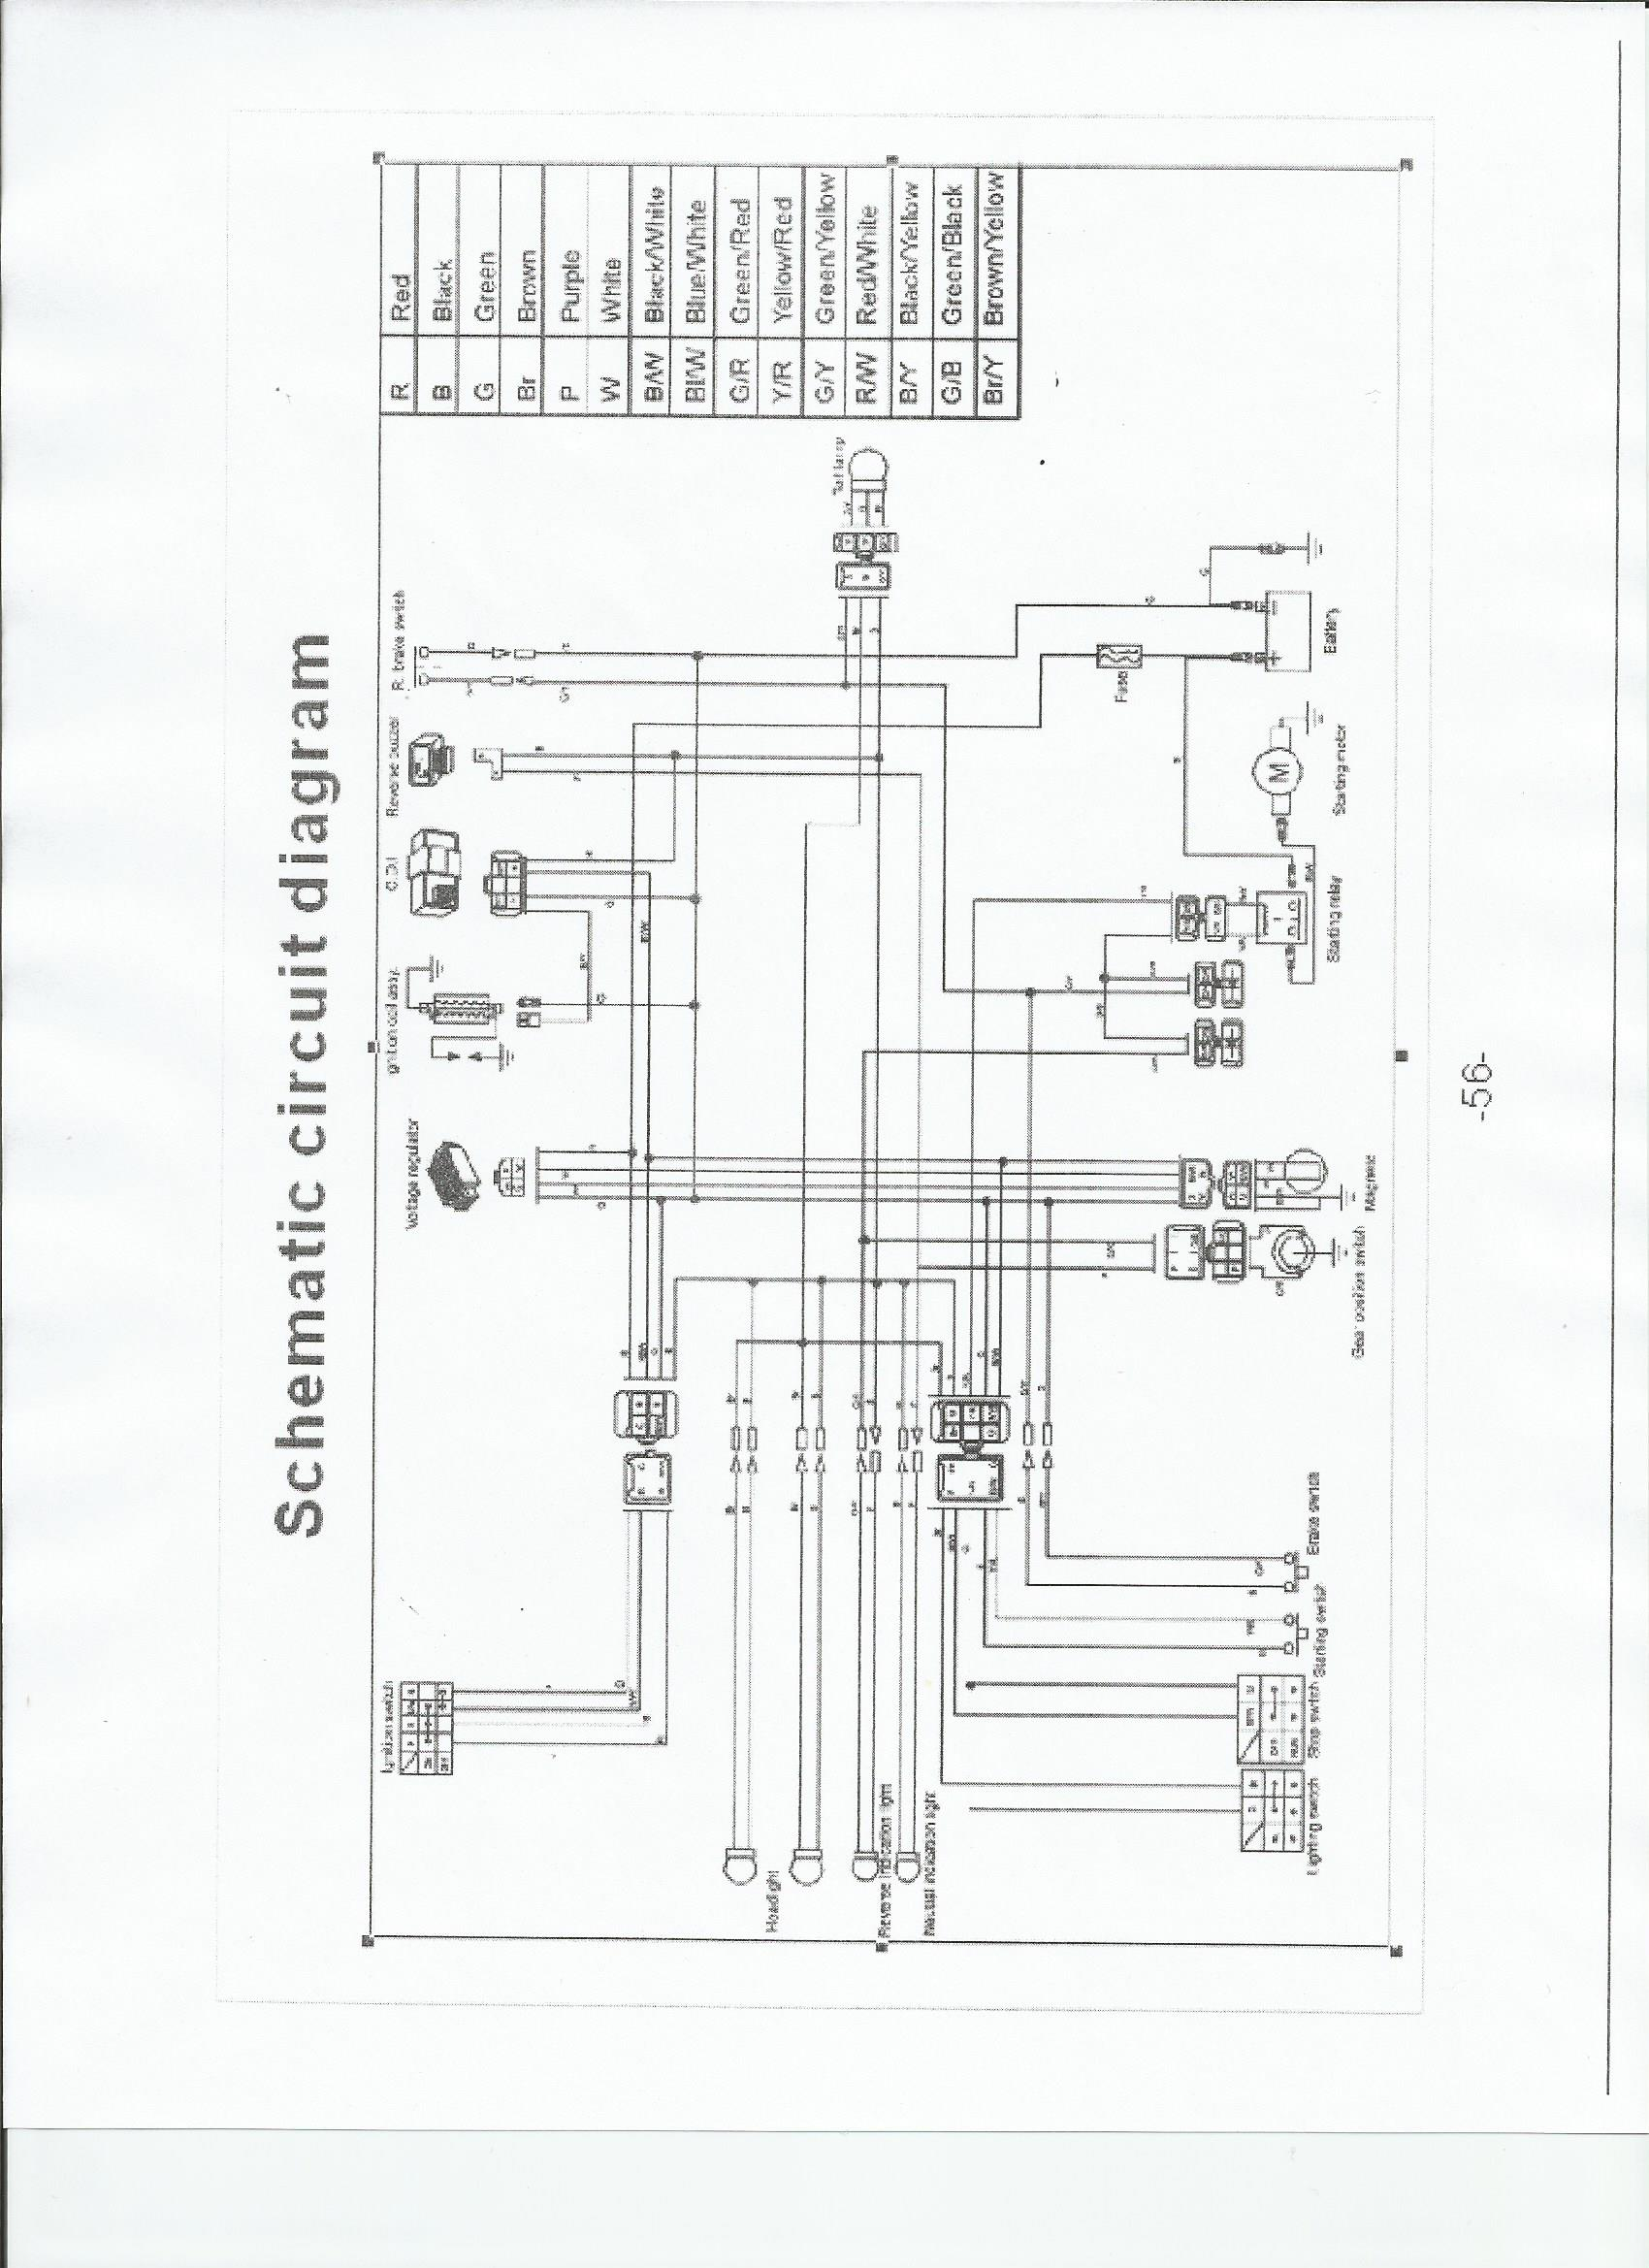 2005 Honda 400ex Wiring Diagram 31 Images 2010 Rebel Tao Schematicresized6652c915 250